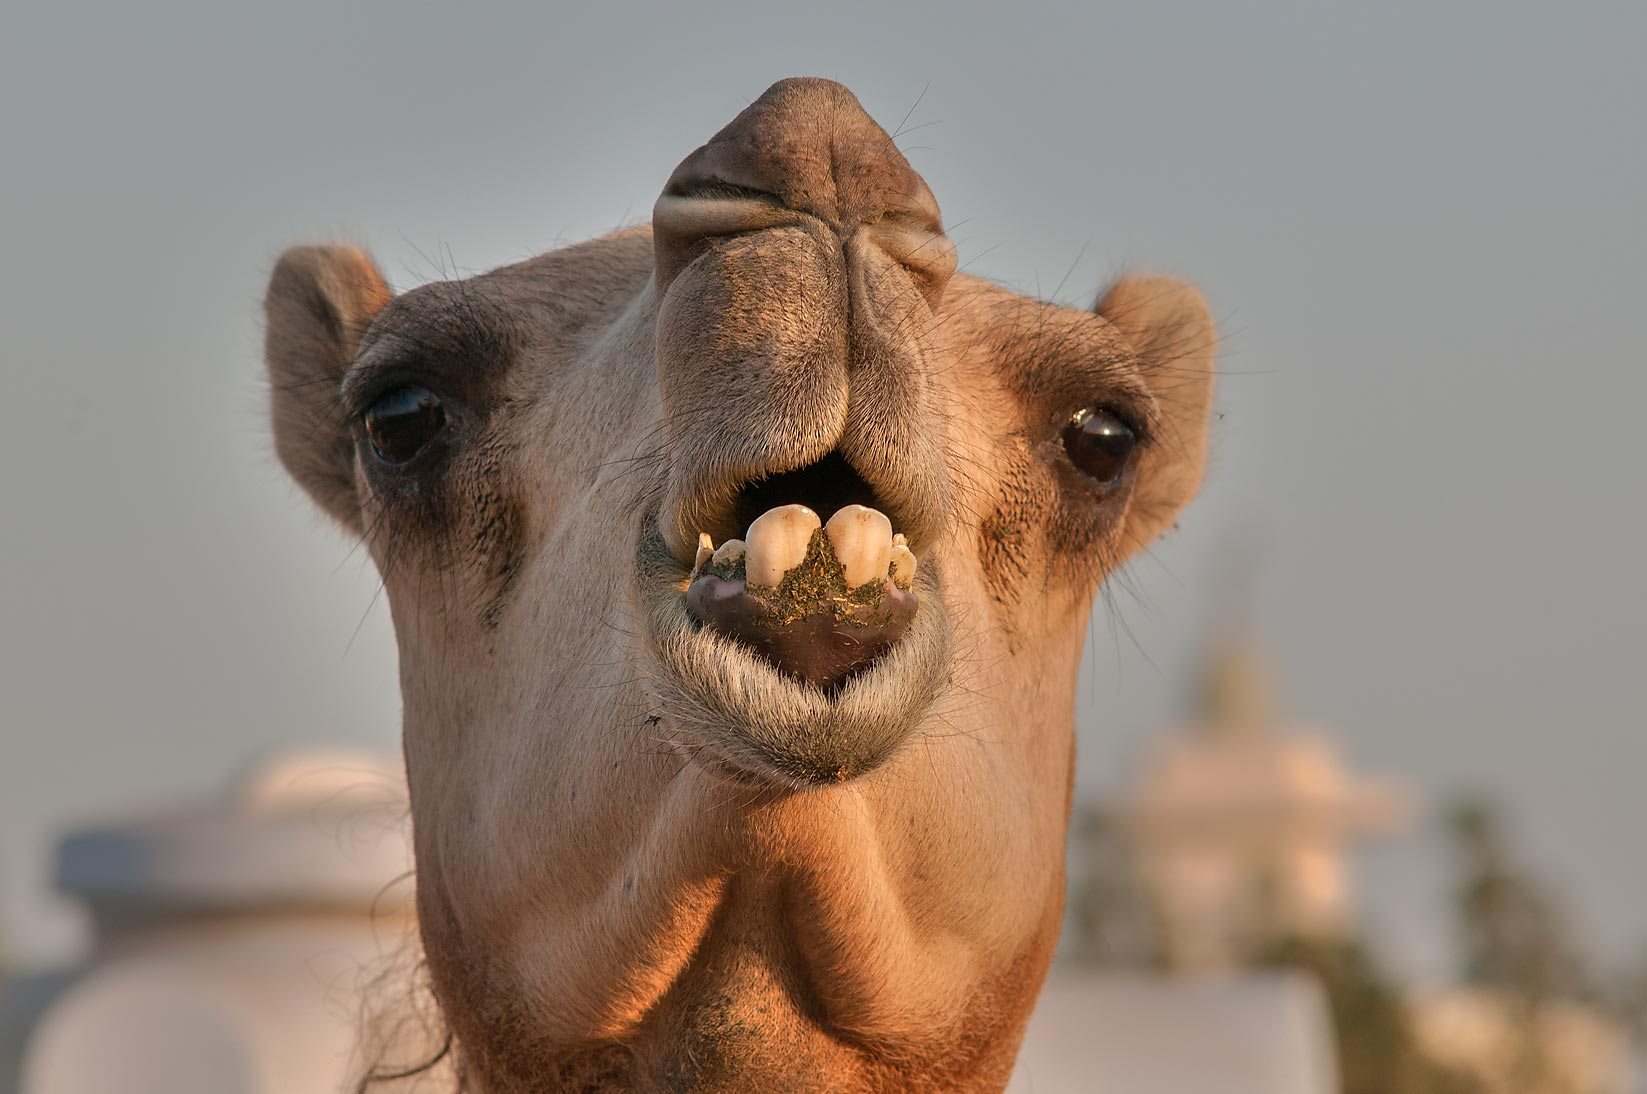 Camel's face in Camel Market (Souq), Wholesale Markets area. Doha, Qatar